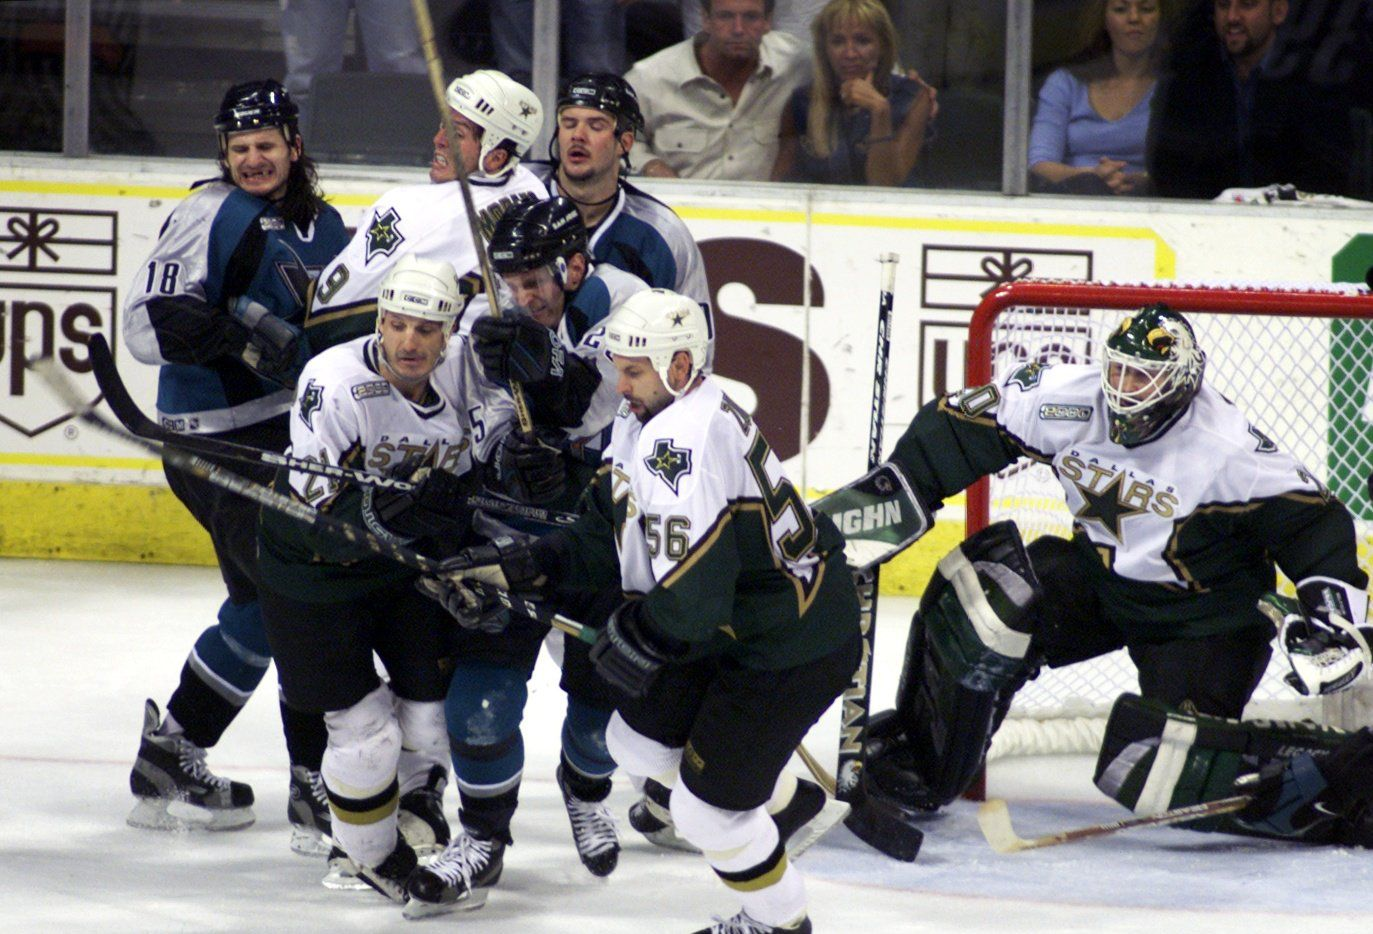 FILE - Dallas and San Jose players fight for the puck in front of Stars goalie Ed Belfour during the final minute of a playoff game at Reunion Arena in 2000. The players pictured are San Jose's Mike Ricci (18), Dallas' Mike Modano (9), Dallas' Guy Carbonneau (21), San Jose's Vincent Damphousse (25) and Dallas' Sergei Zubov (56).